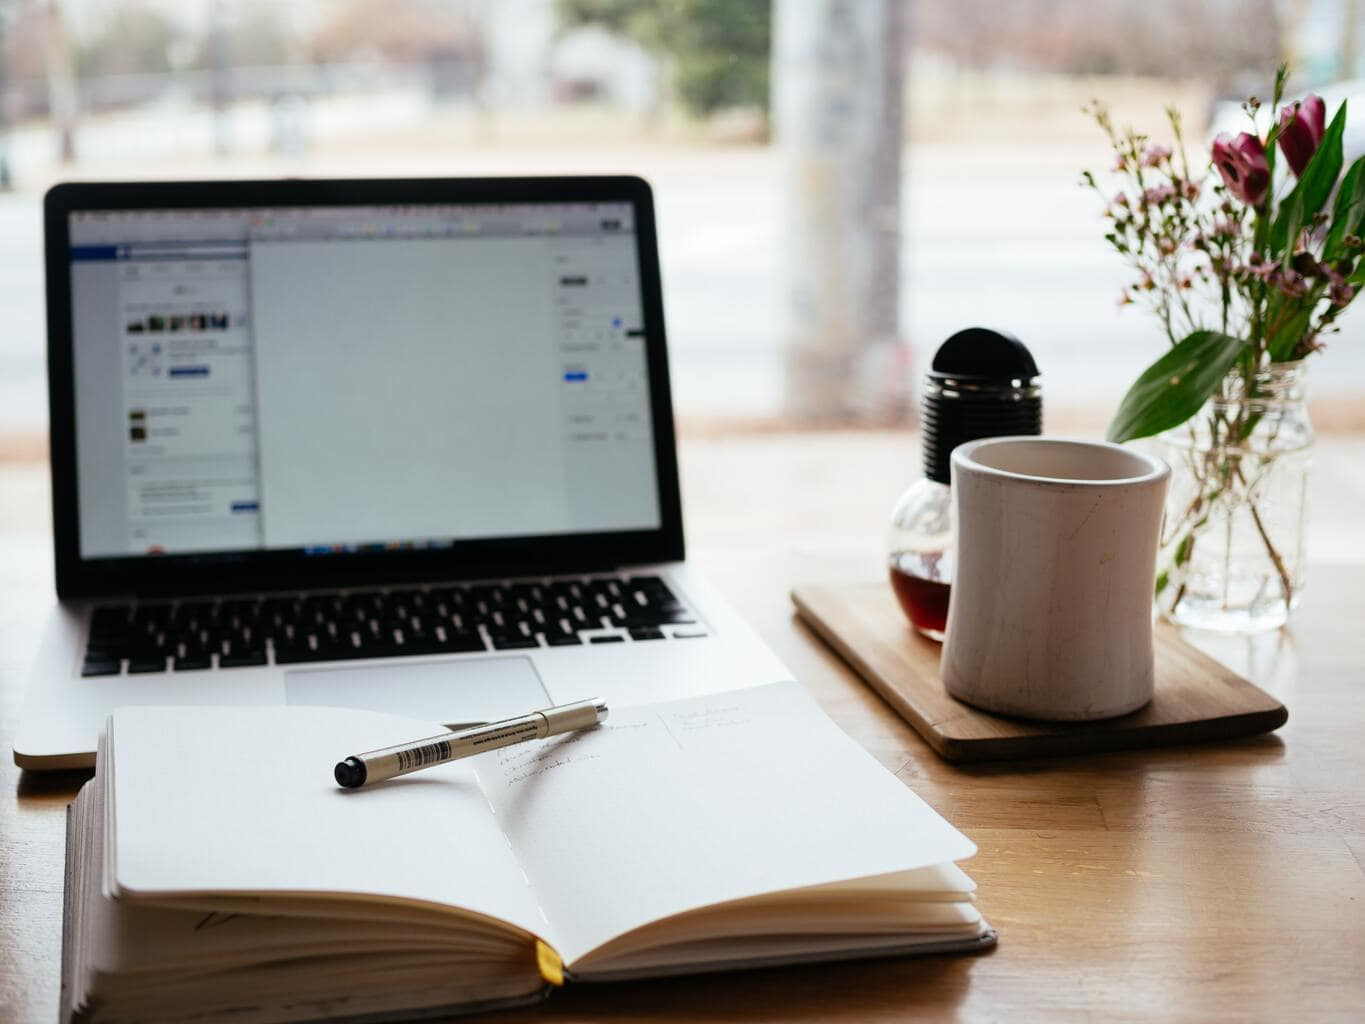 Missing Pinterest Image Options To Consider Header Image Of Desk With Laptop, Open Notebook & Pen